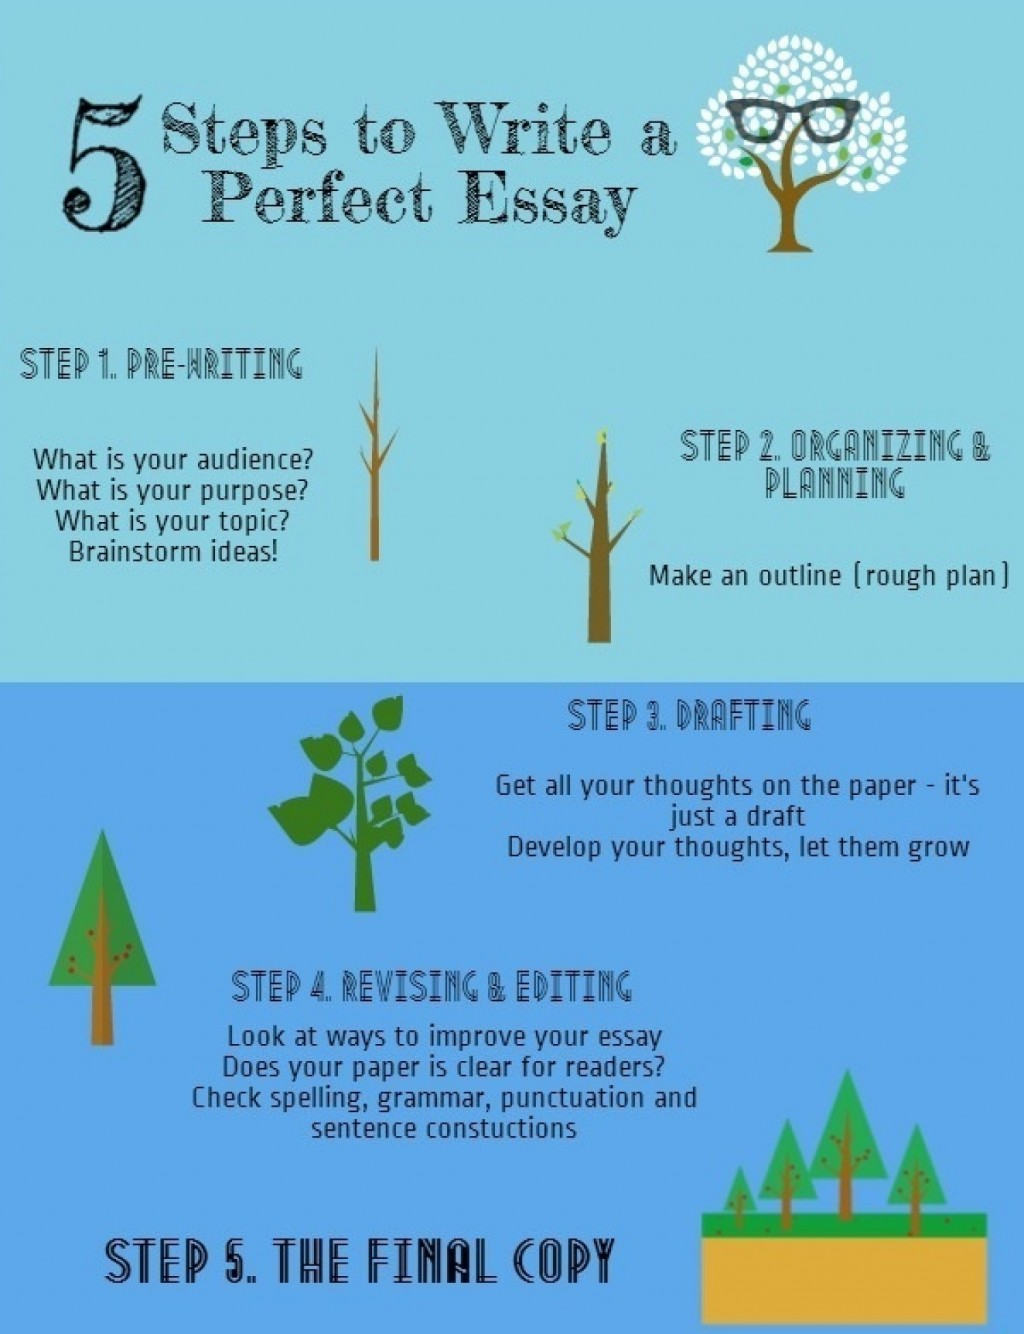 002 Steps To Write Perfect Essay 547da311ad70a W1500 Writing An Stunning Middle School Argumentative Large